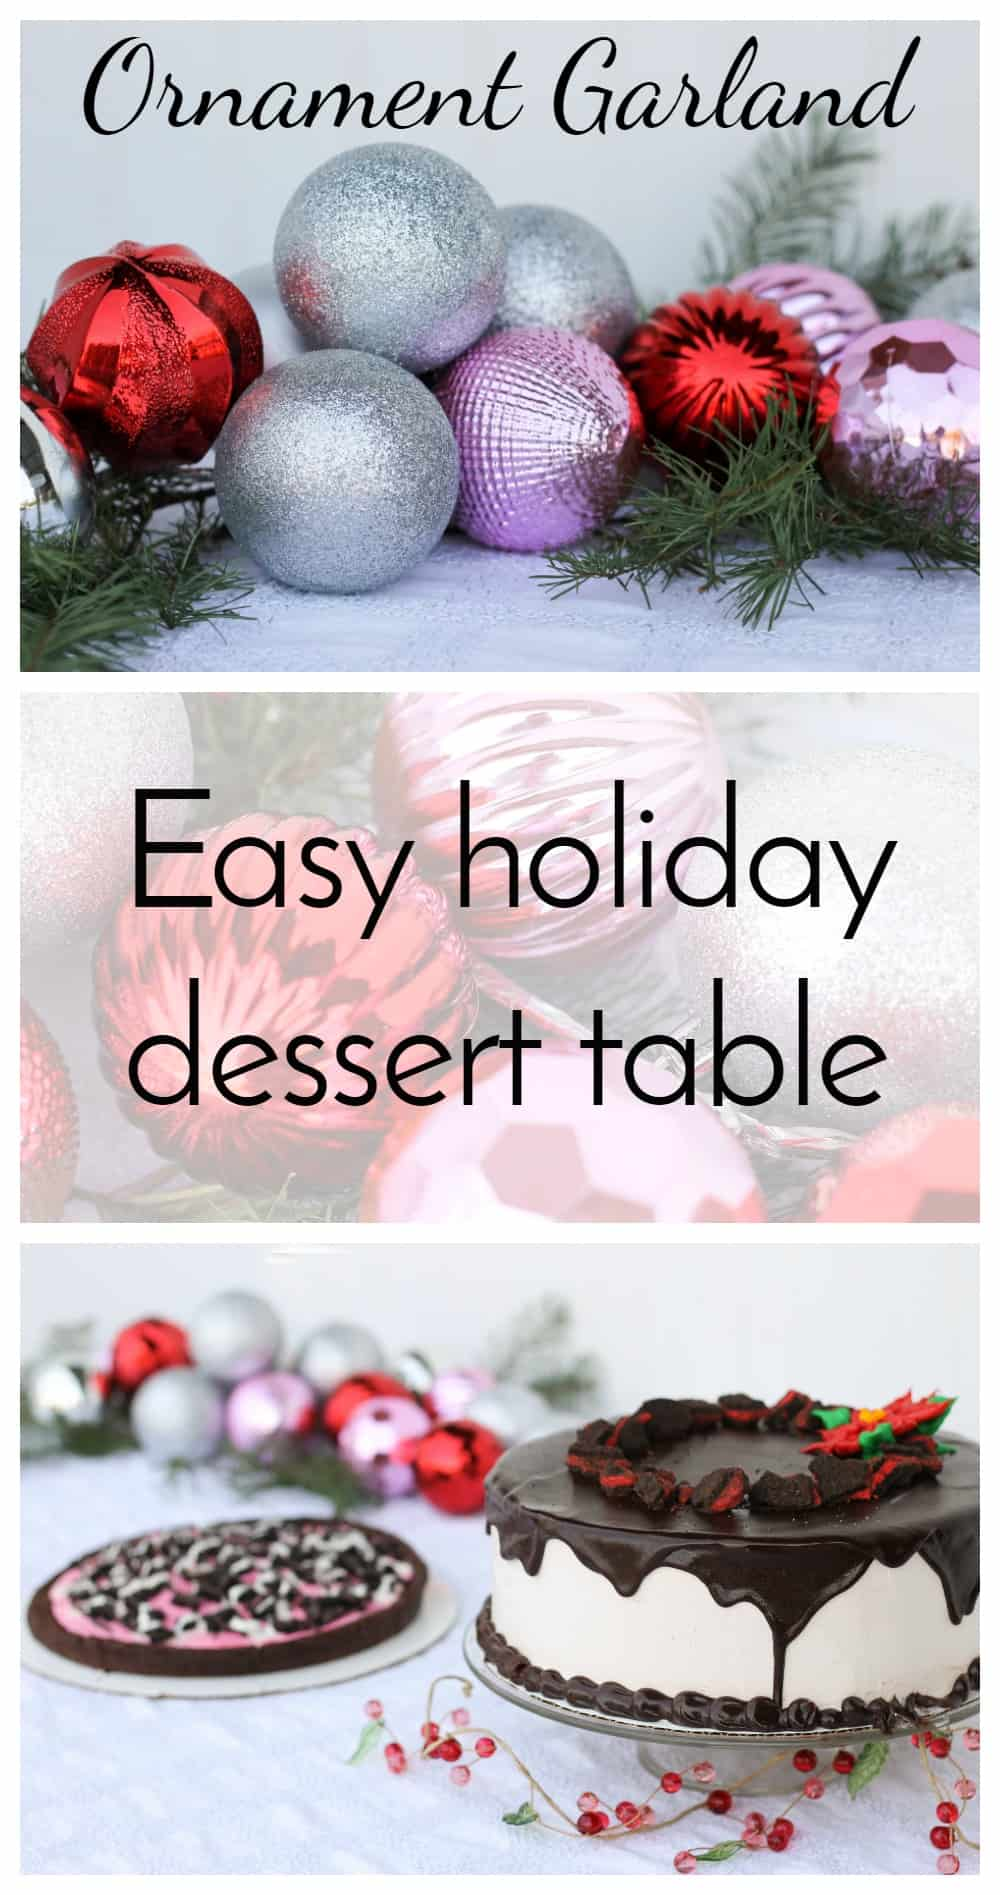 Grab some inexpensive ornaments and a little fresh greenery for a DIY Ornament Garland! What a fun way to add color to the party table!  via @nmburk